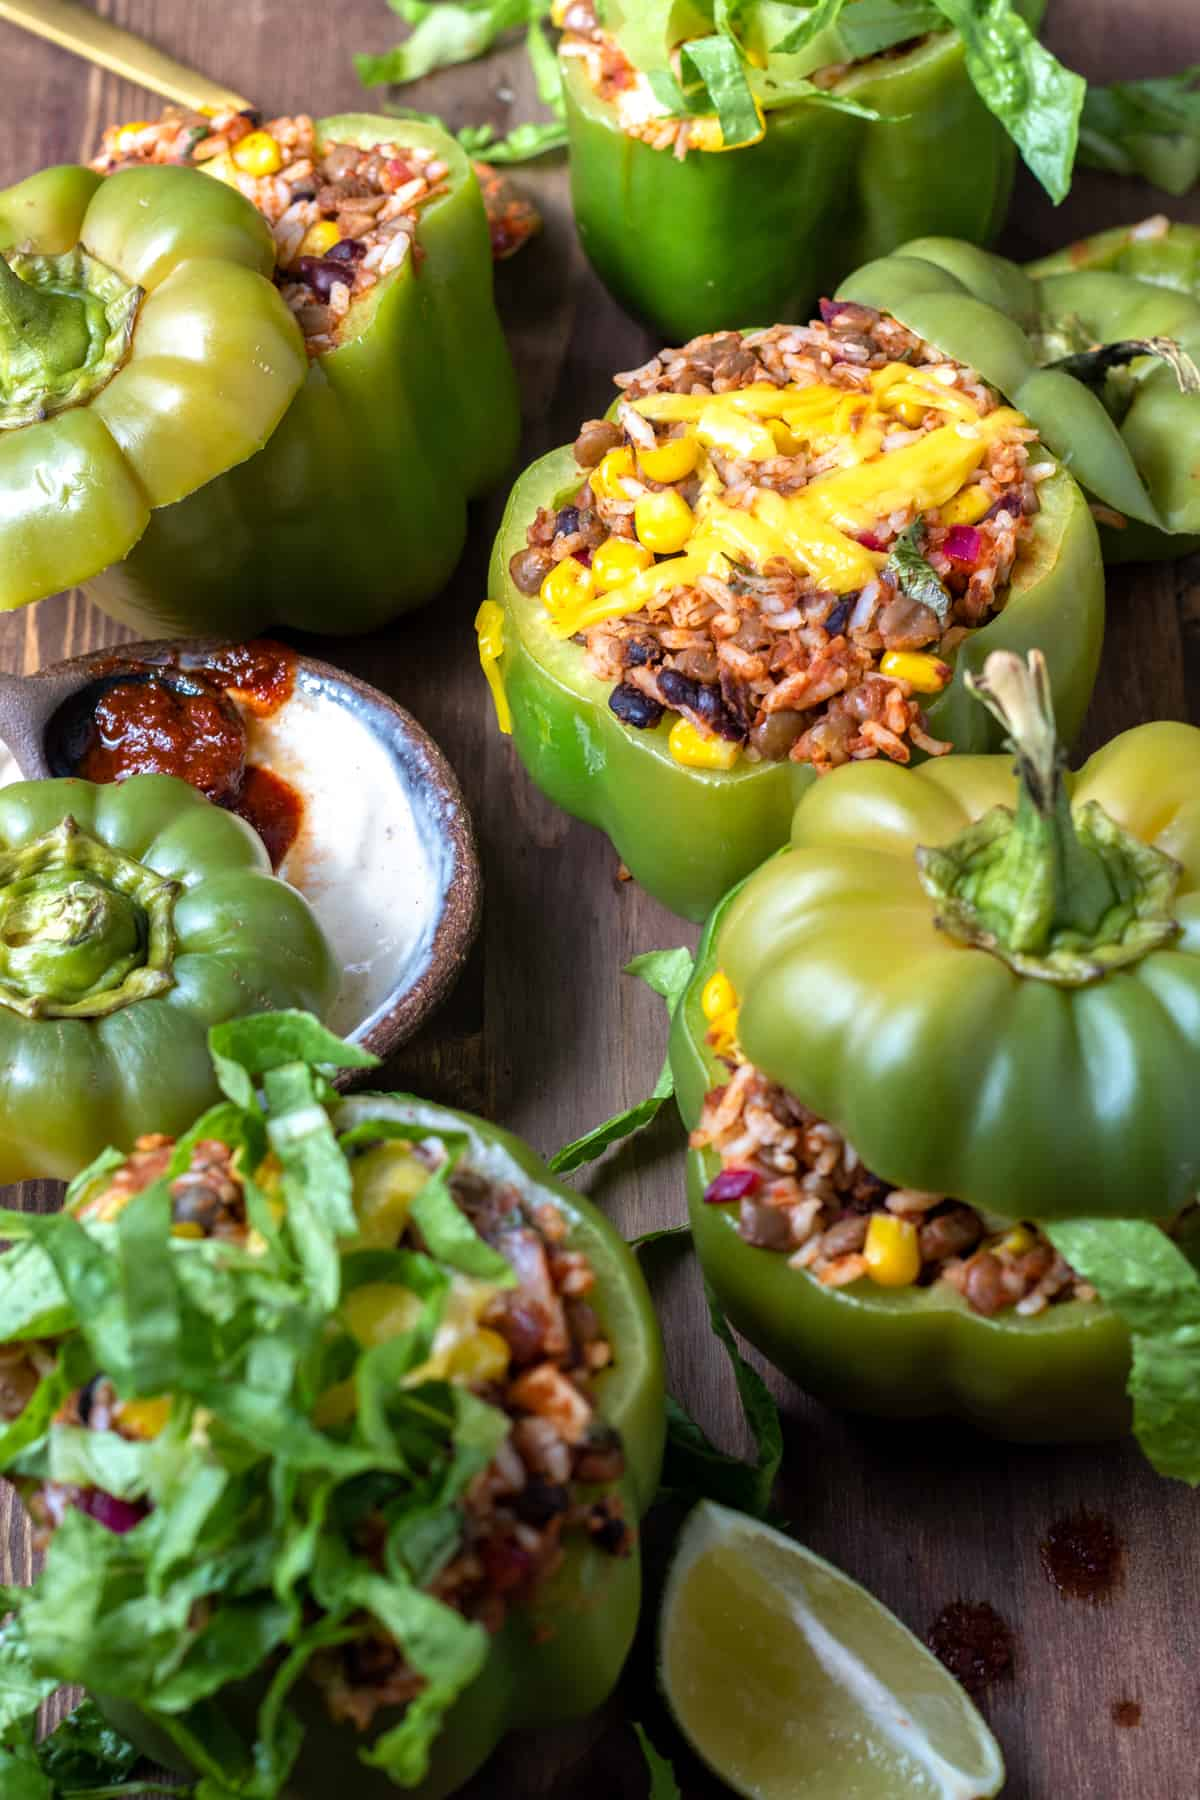 stuffed bell peppers topped with melted vegan cheese and cashew sour cream sauce